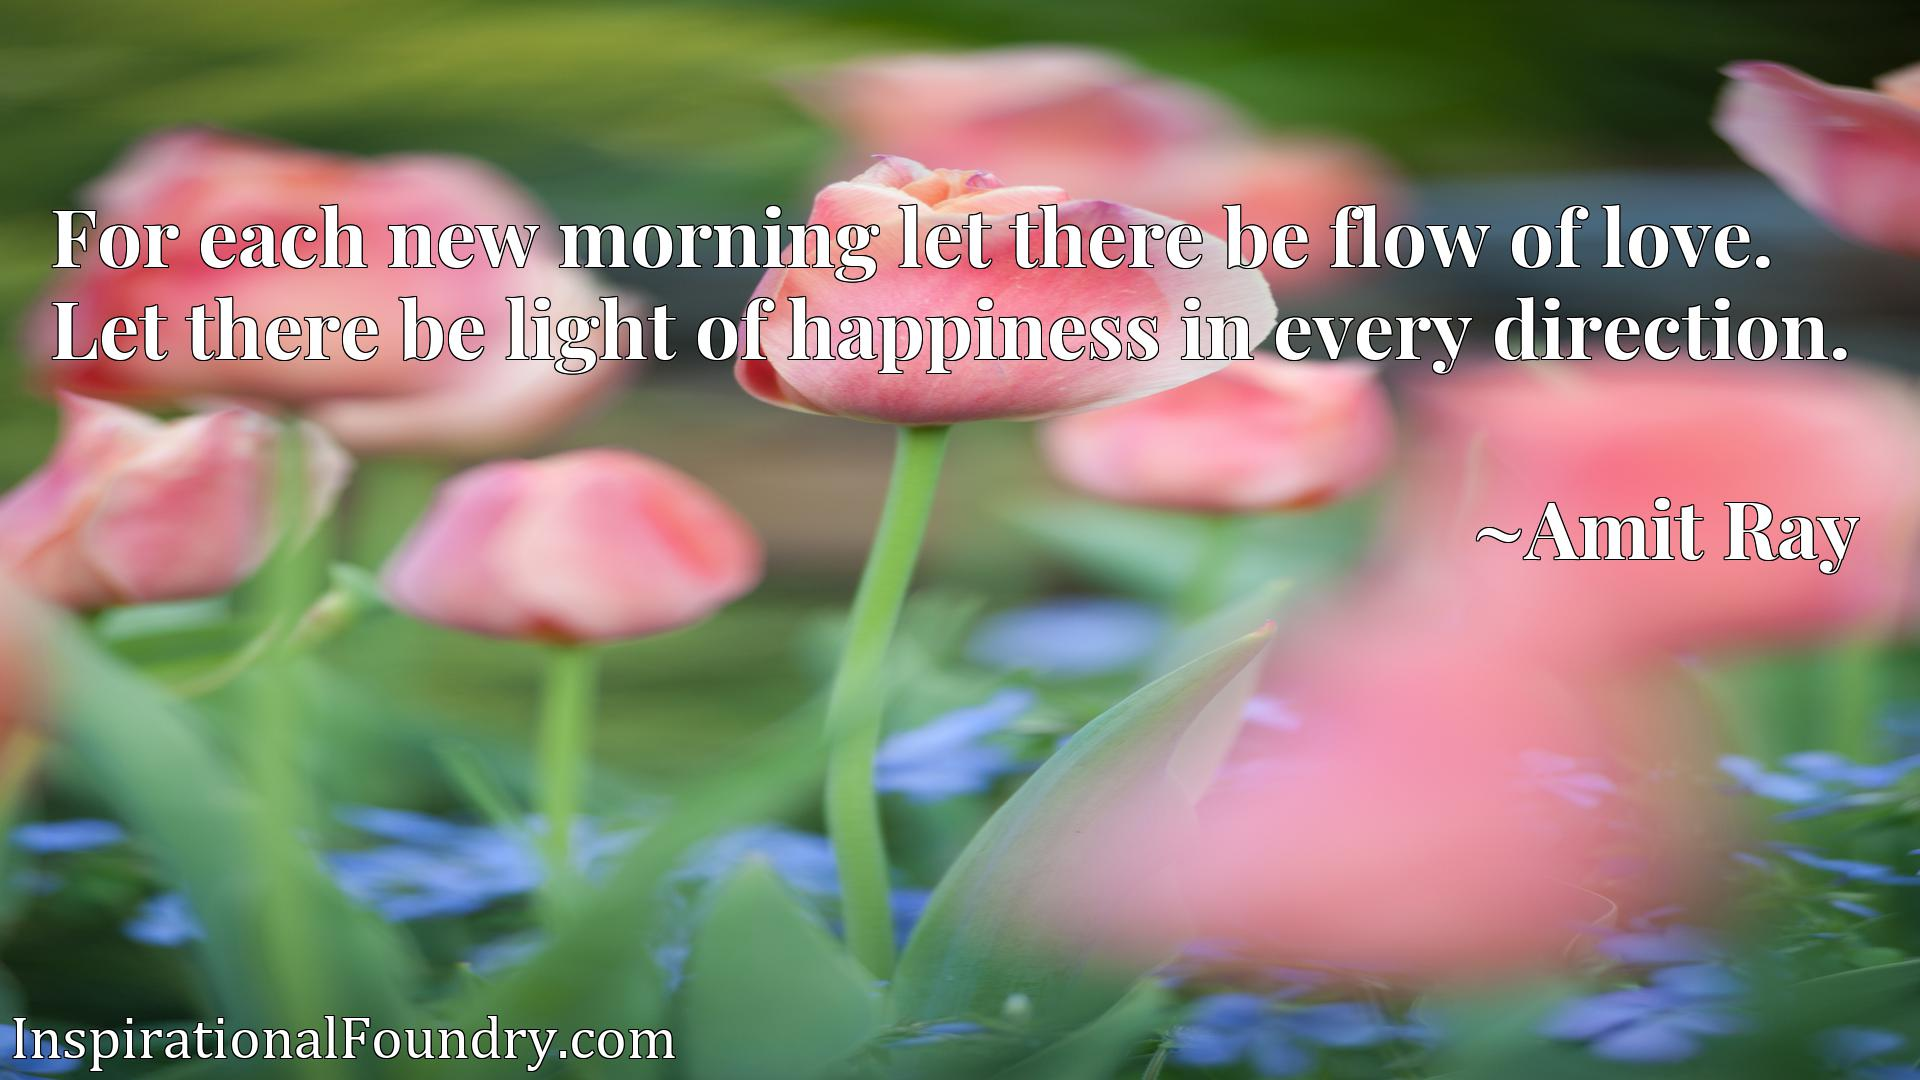 For each new morning let there be flow of love. Let there be light of happiness in every direction.